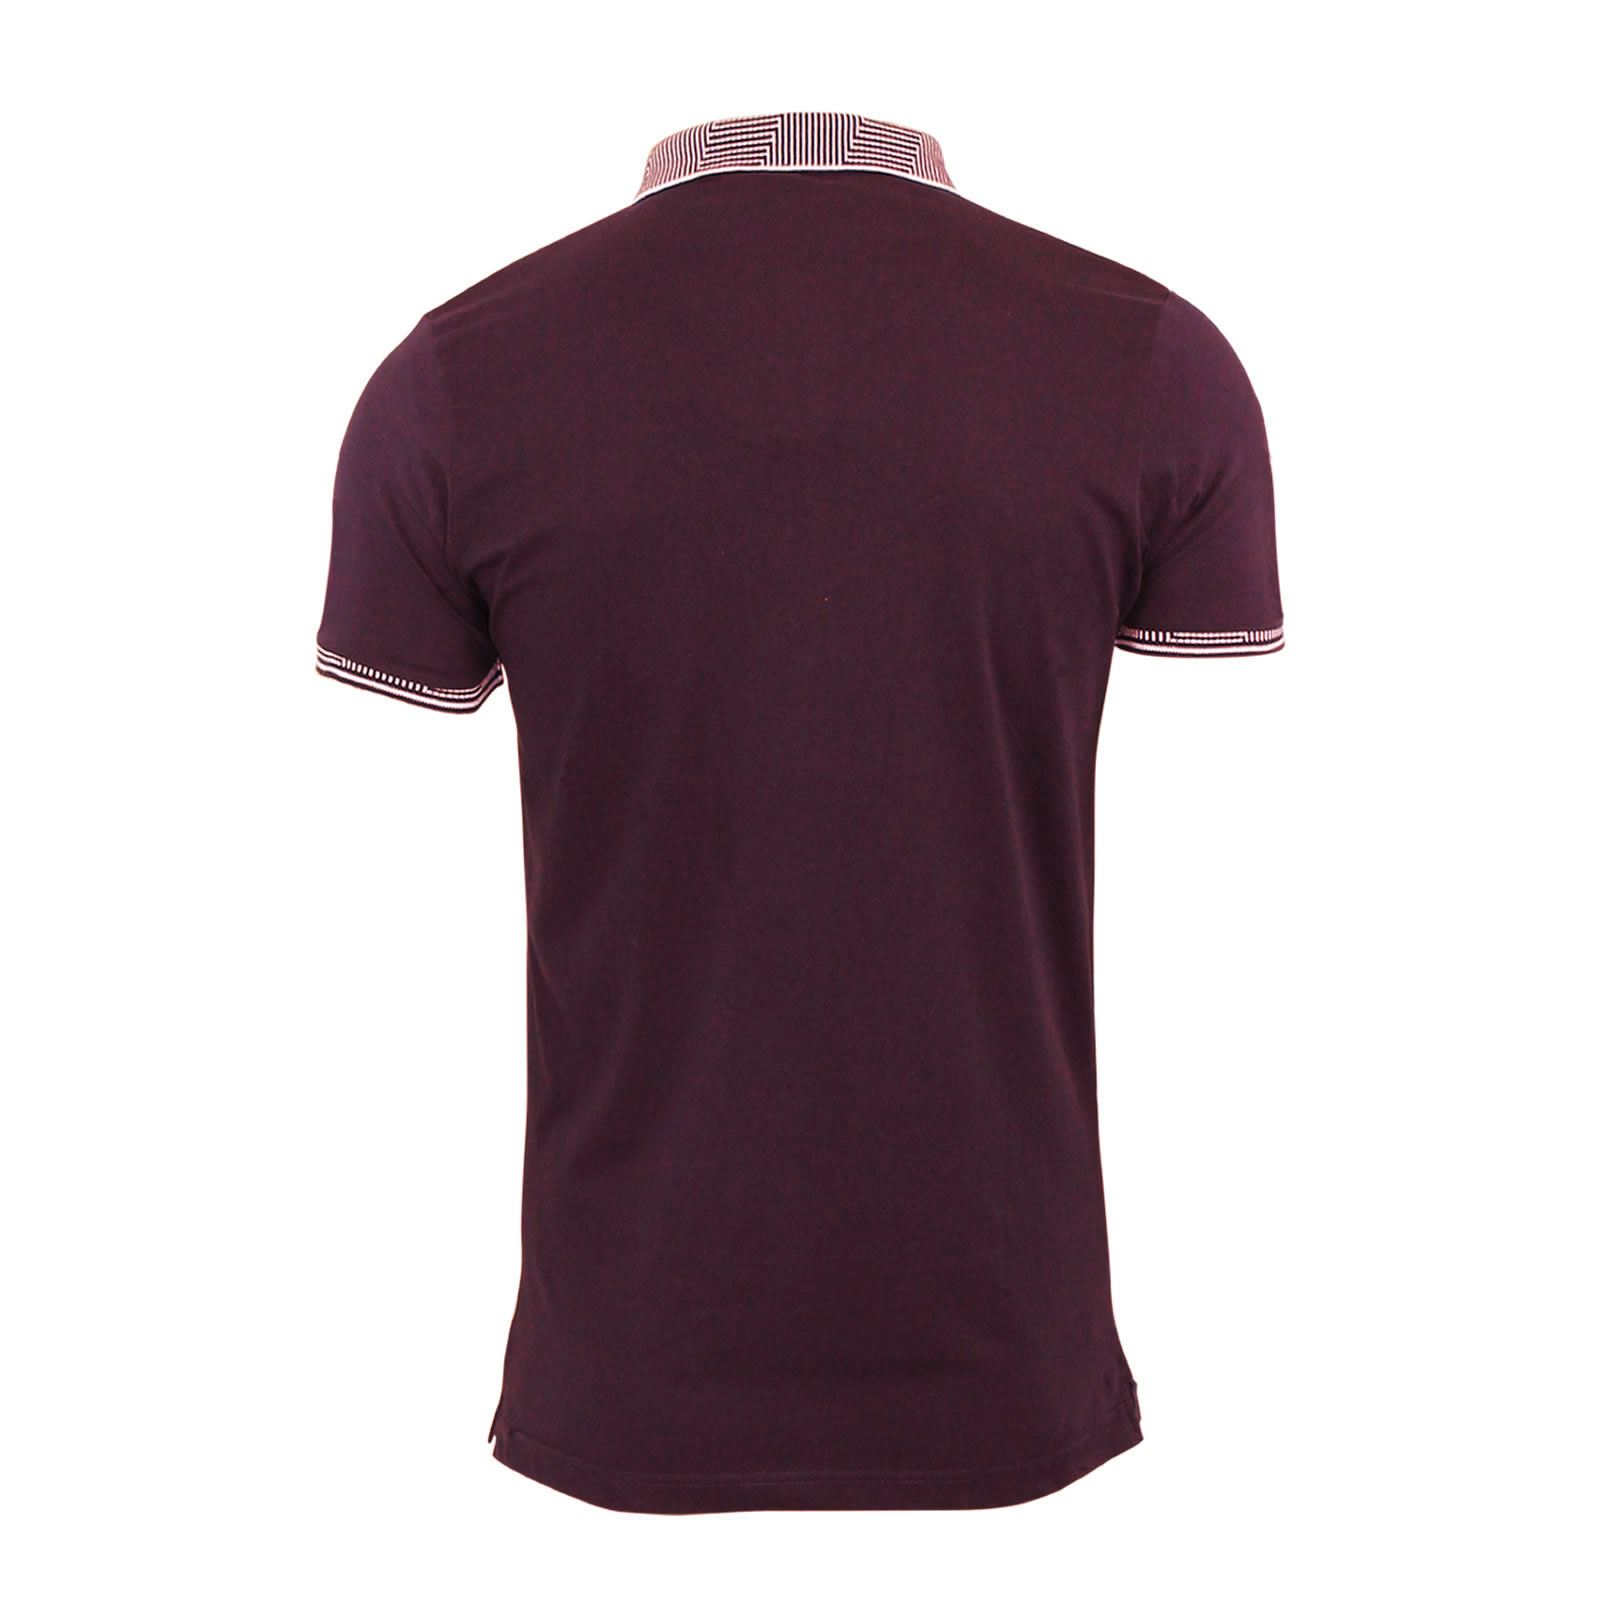 Brave-Soul-Glover-Mens-Polo-T-Shirt-Cotton-Collared-Short-Sleeve-Casual-Top thumbnail 36